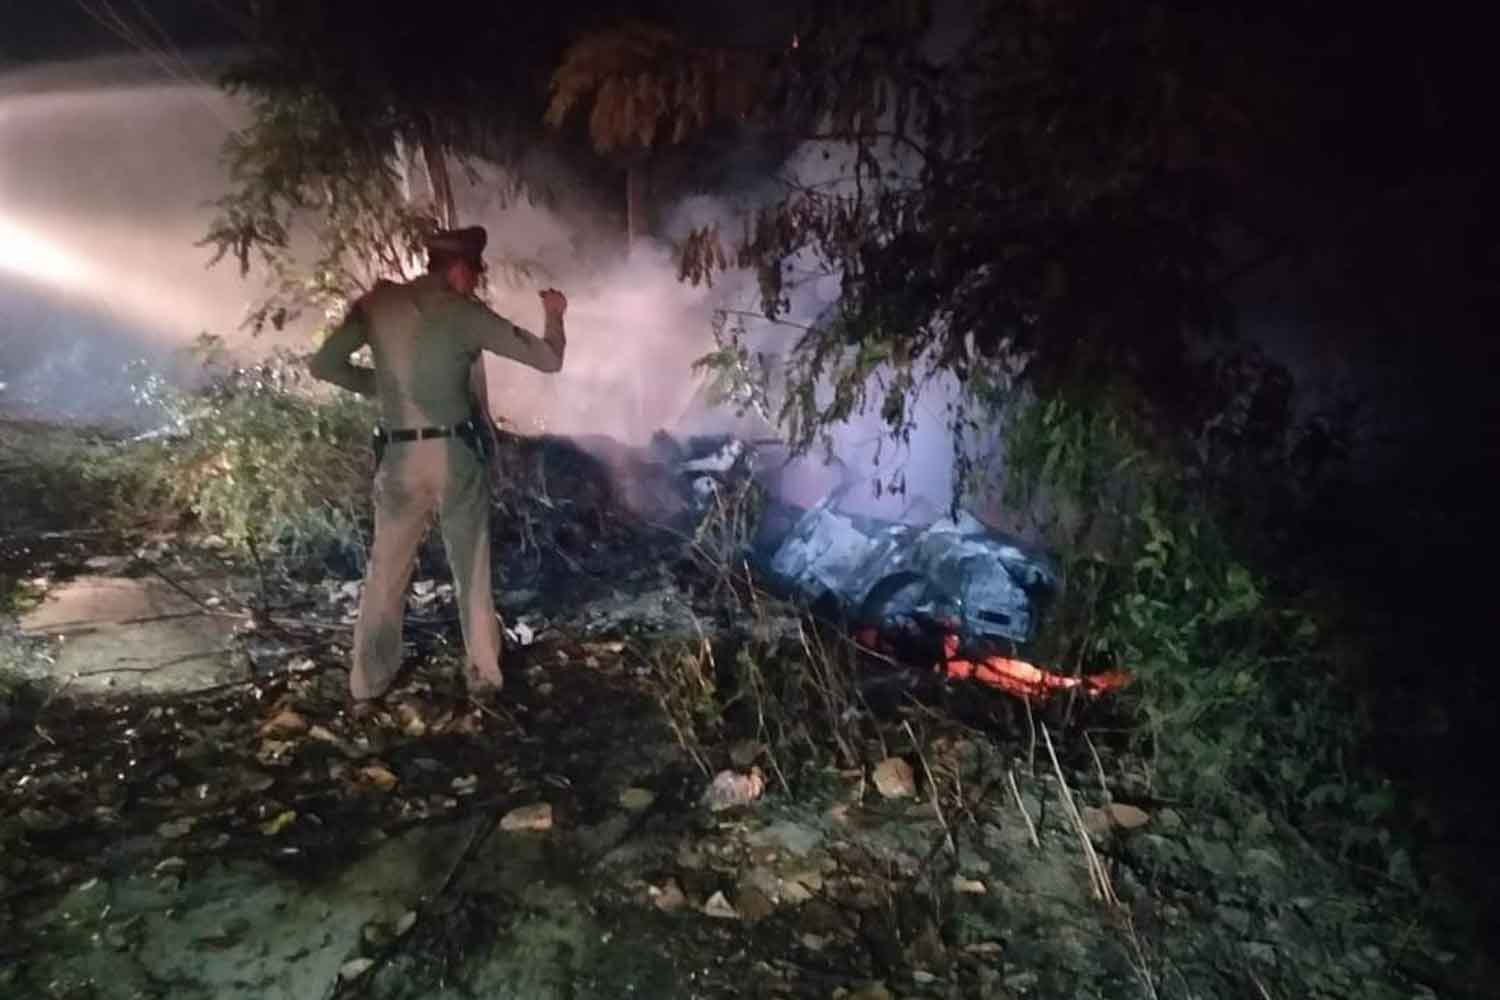 A police officer examines the car that skidded off a road in Ban Lat district, Phetchaburi province, and went up in flames early Sunday. Two men were killed and one injured in the accident. (Photo by Chaiwat Satyaem)